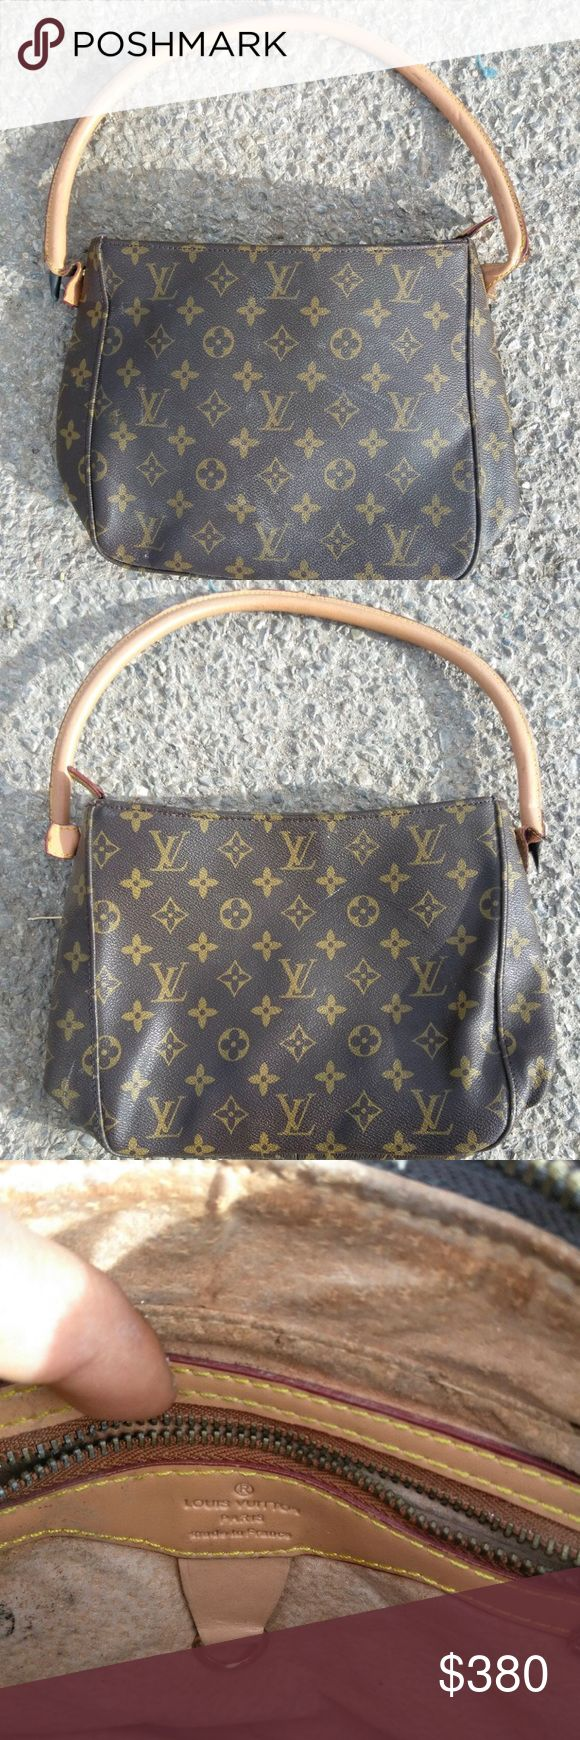 Louis Vuitton Purse Small Louis Vuitton Bag, price negotiable, no major signs on the inside but on one side the strap is not hanging on well. Louis Vuitton Bags Shoulder Bags